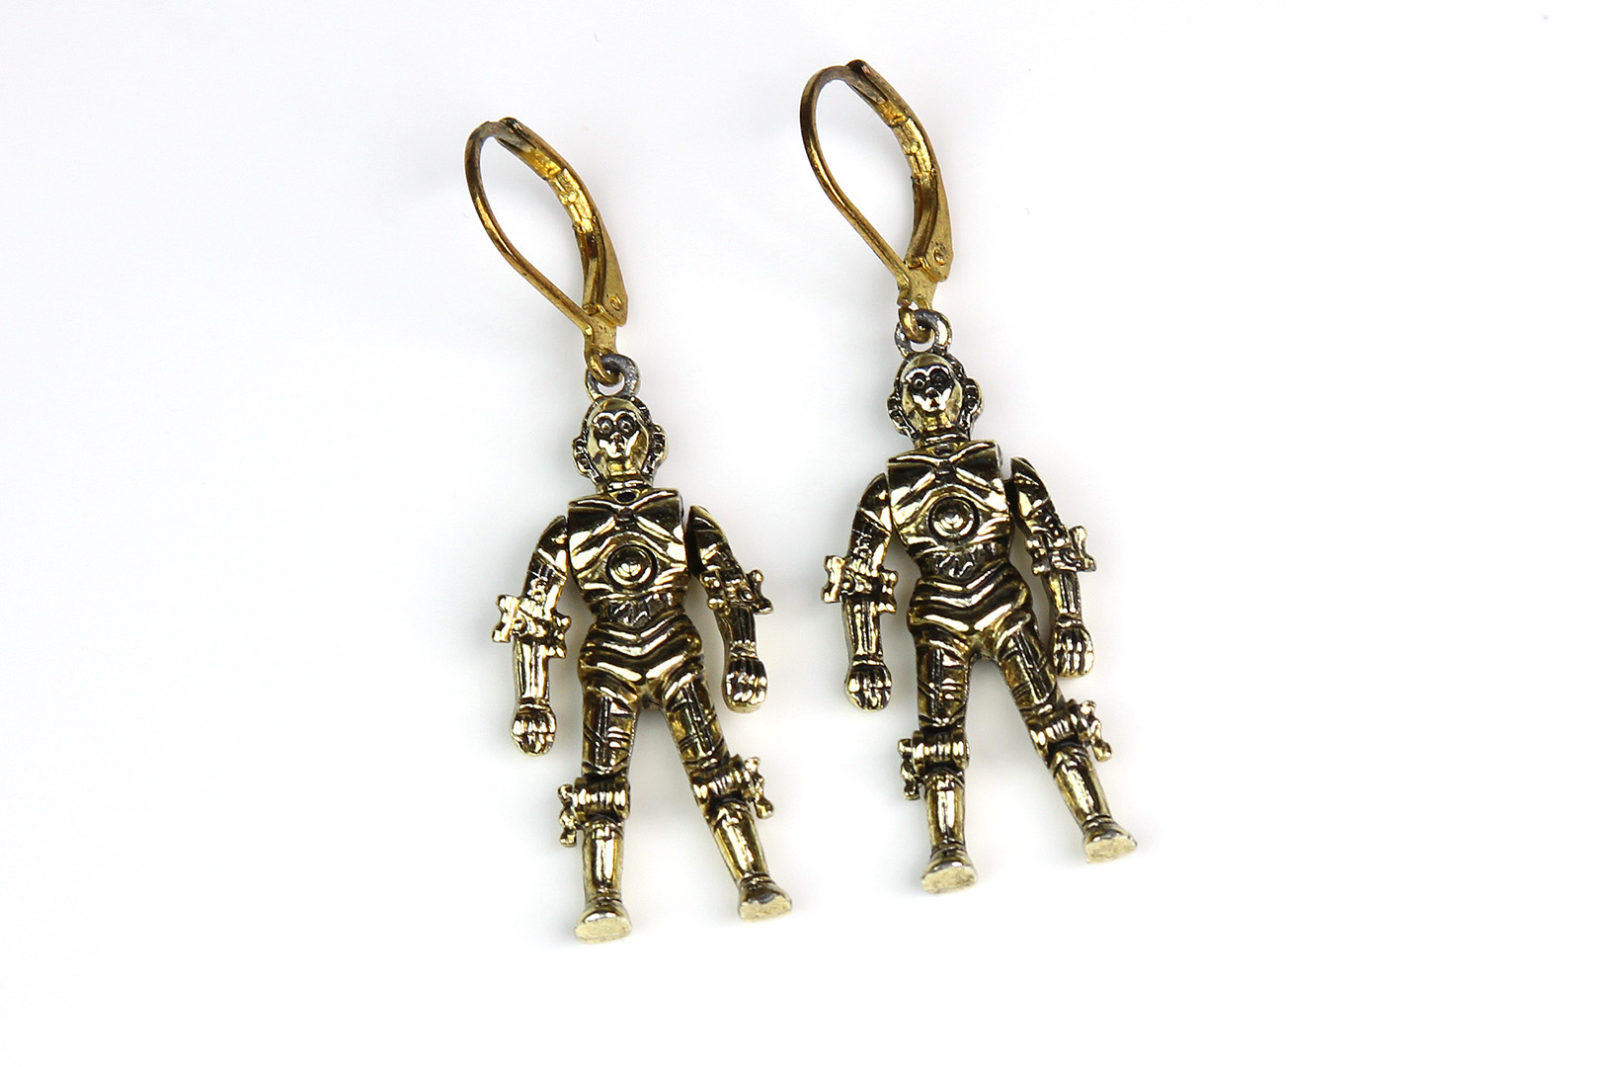 Vintage 1977 C-3PO earrings